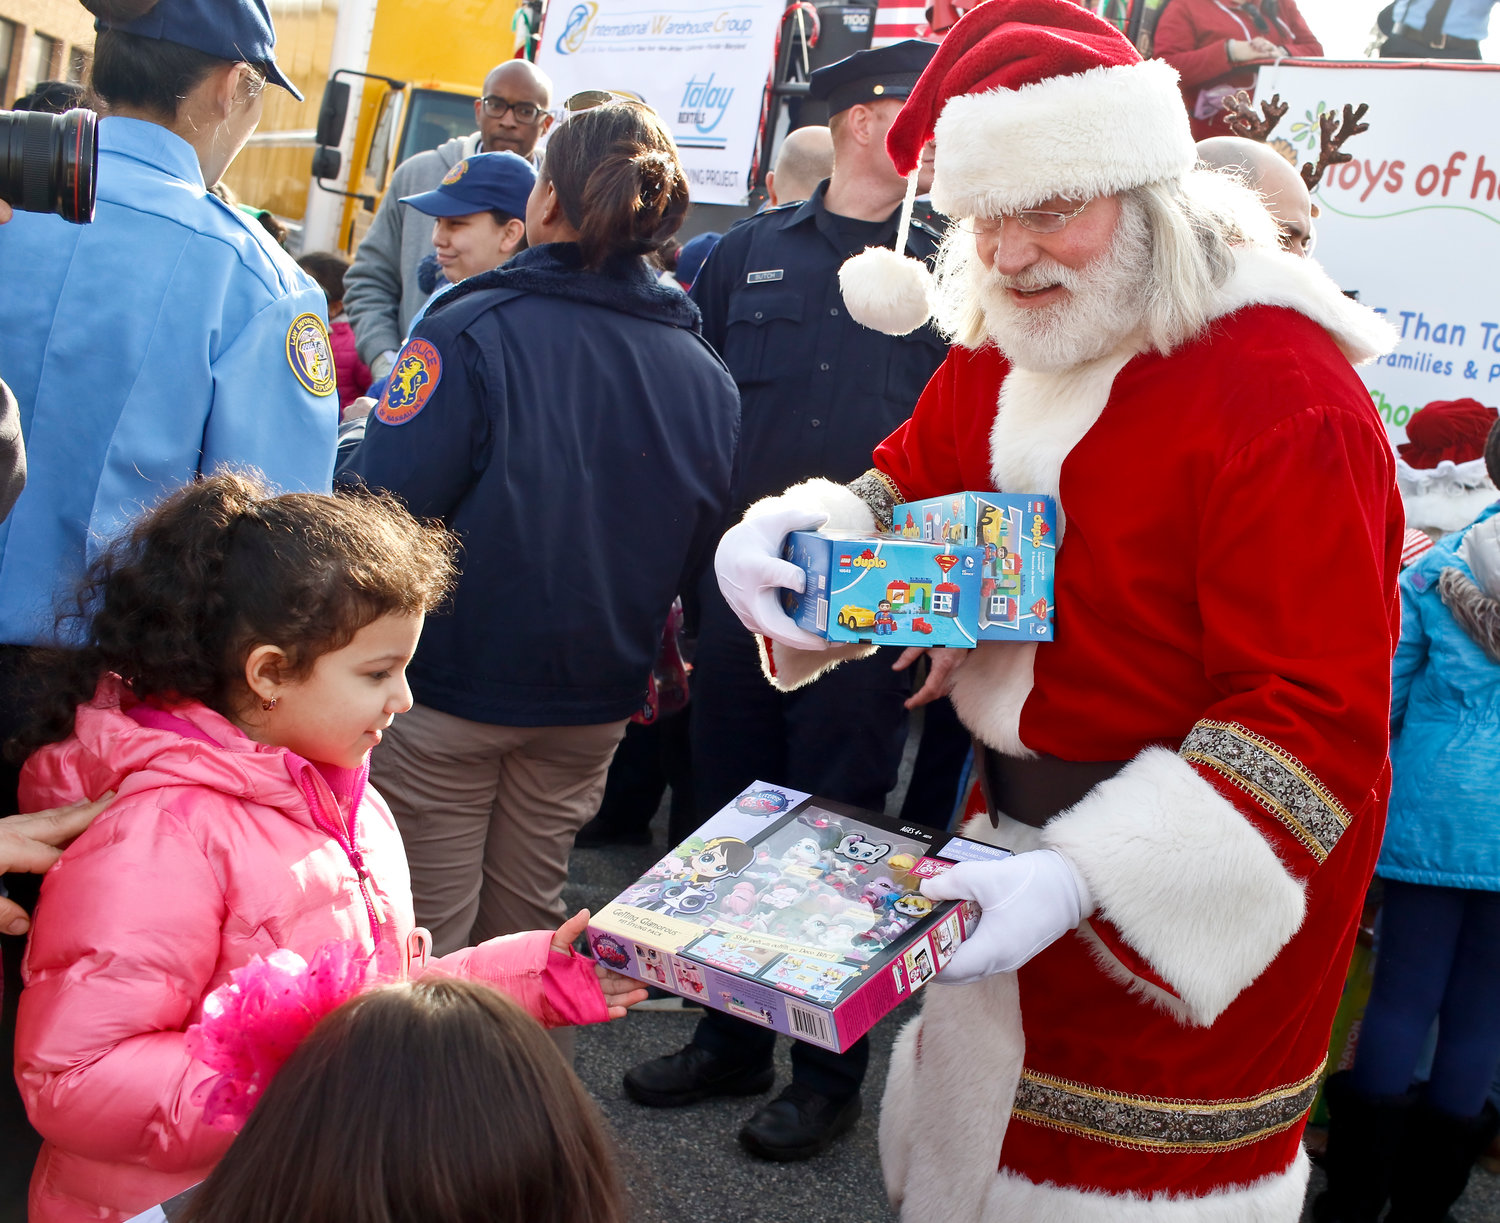 Santa Claus gave a Pet Shop set to Helen Salguero at the toys of hope event. Each child at the event received a toy.